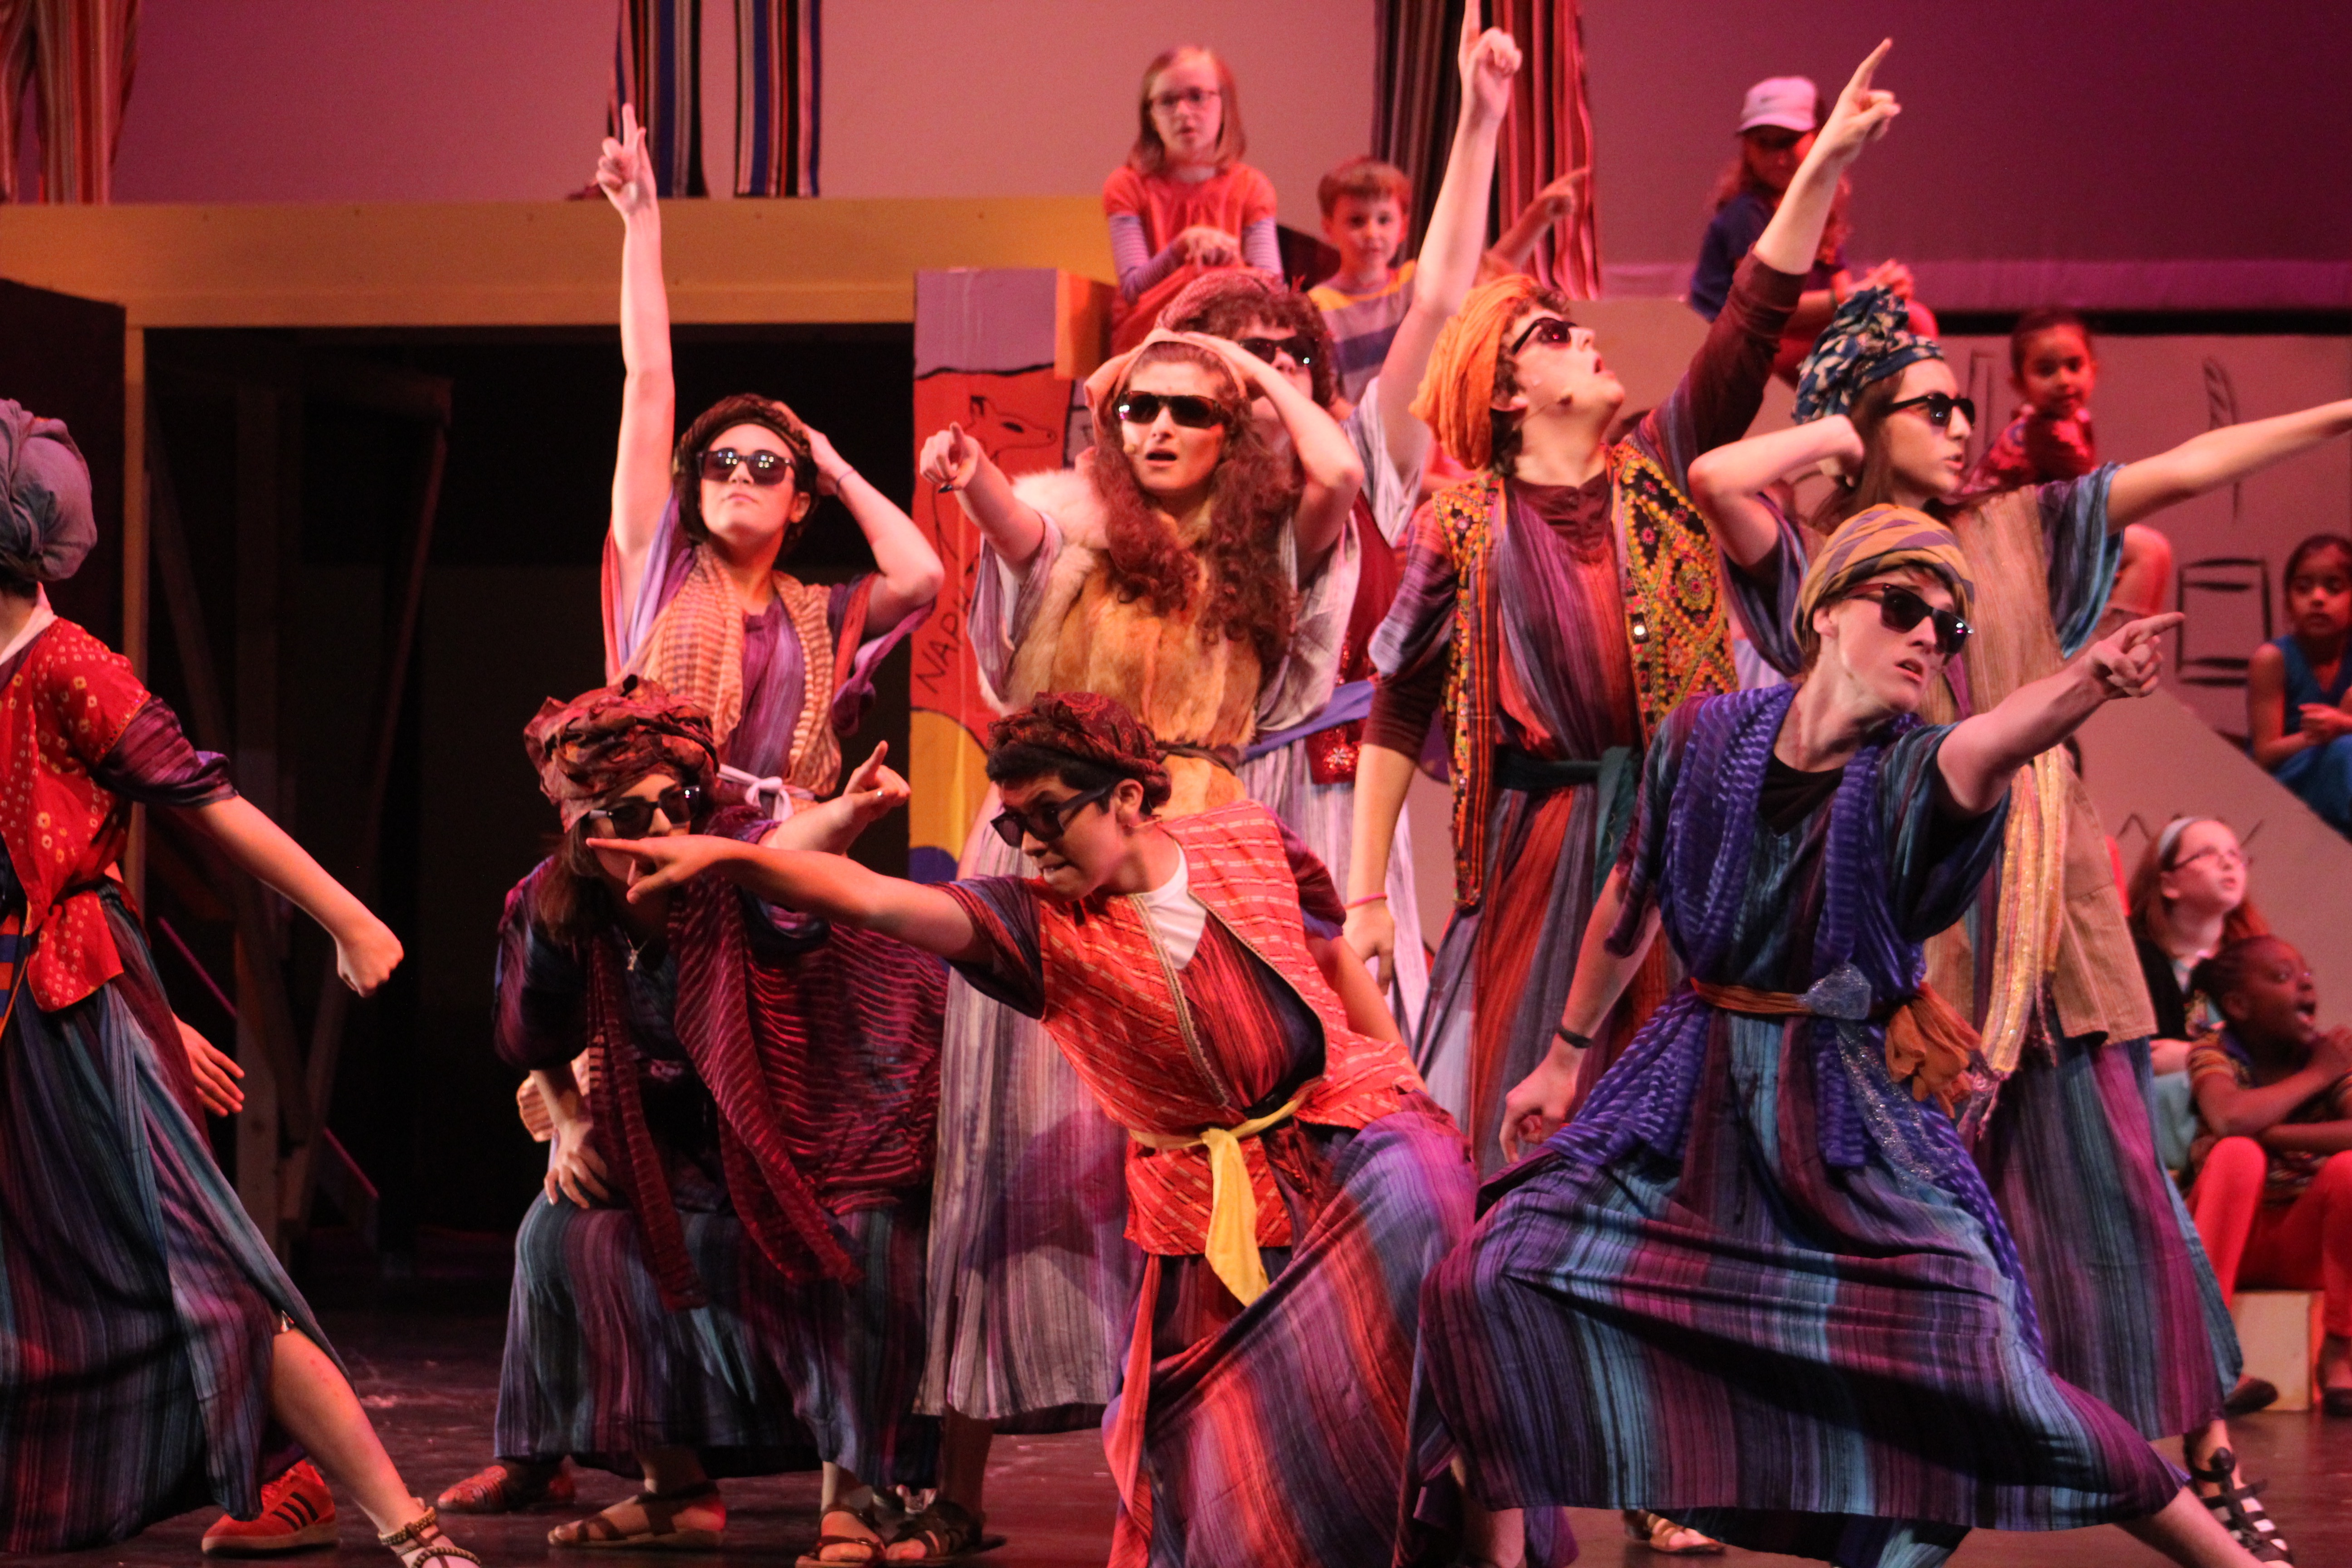 Joseph amazes audiences with colorful music and characters